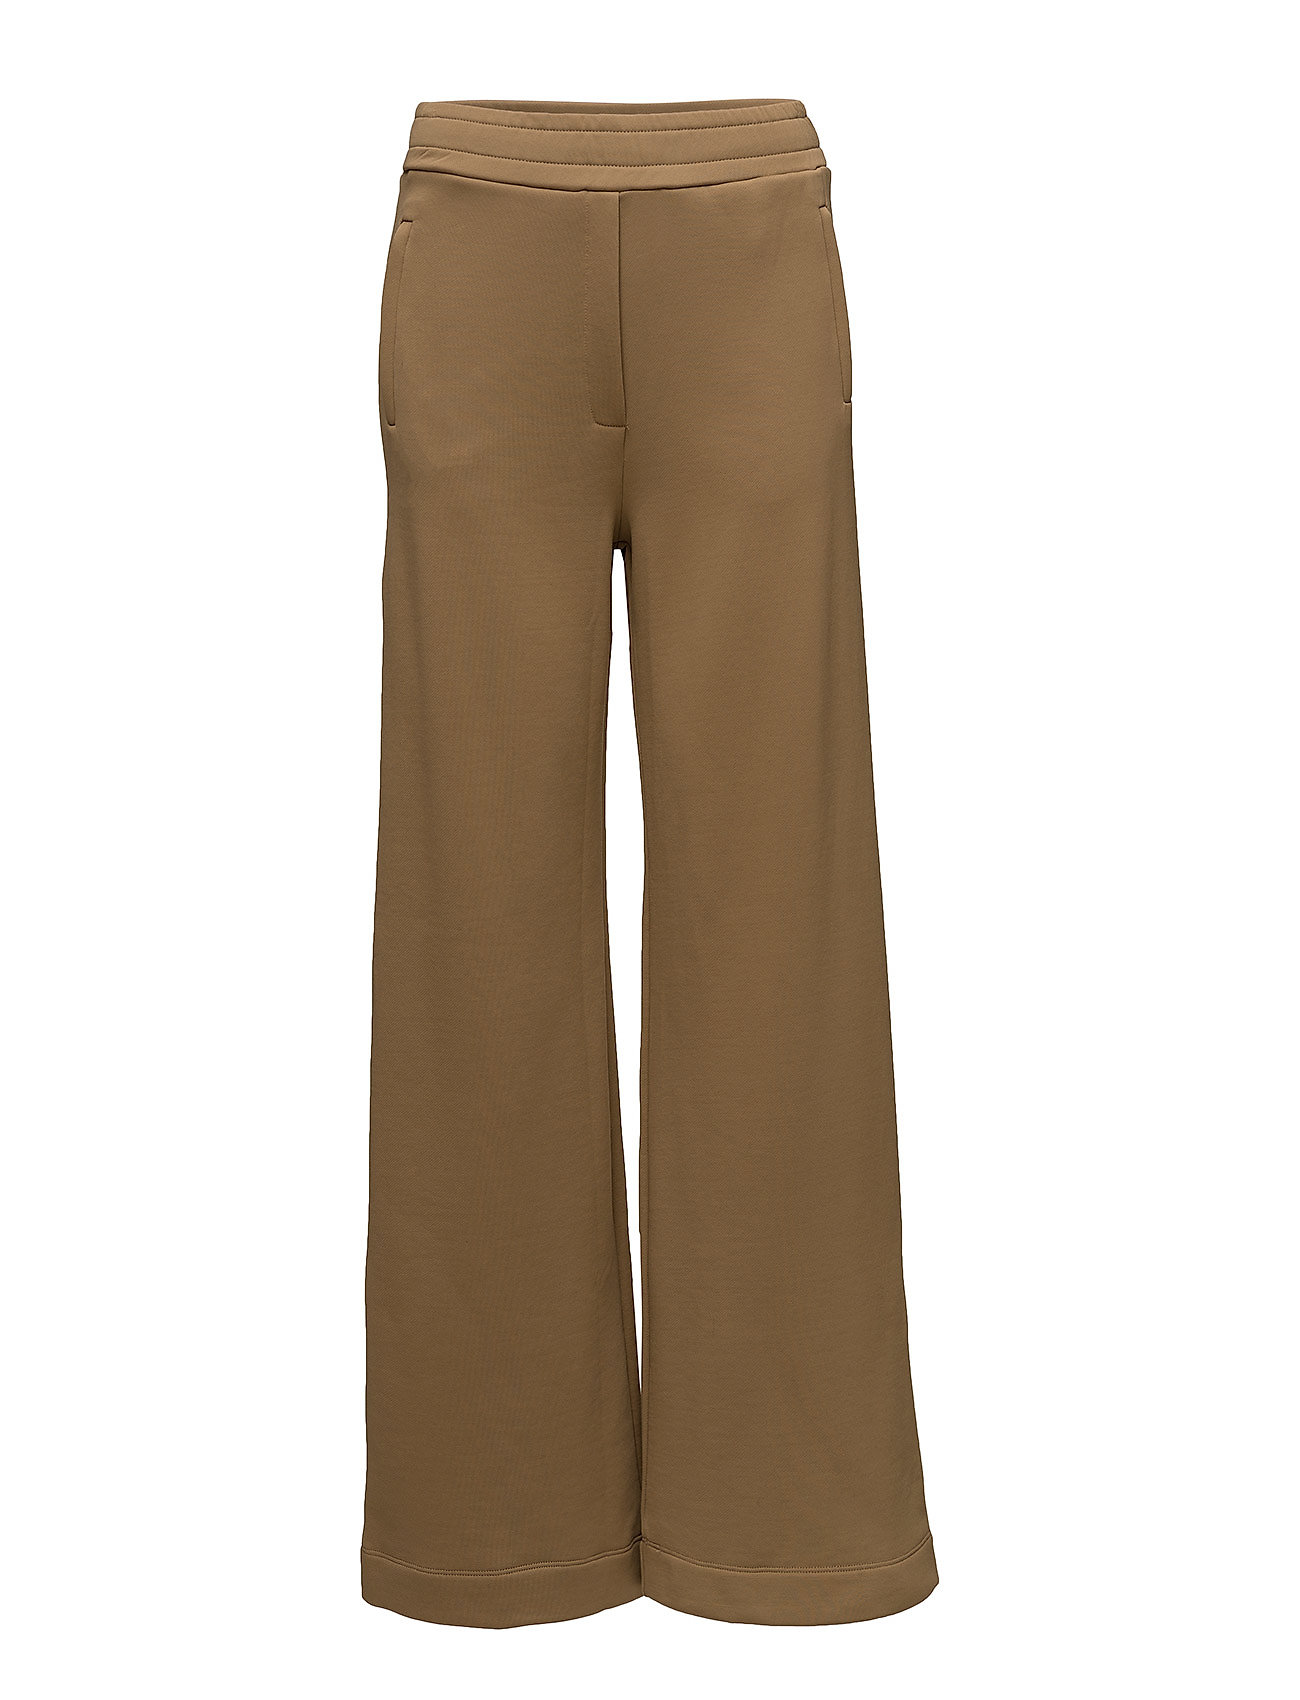 By Malene Birger SAVEUN - KHAKI